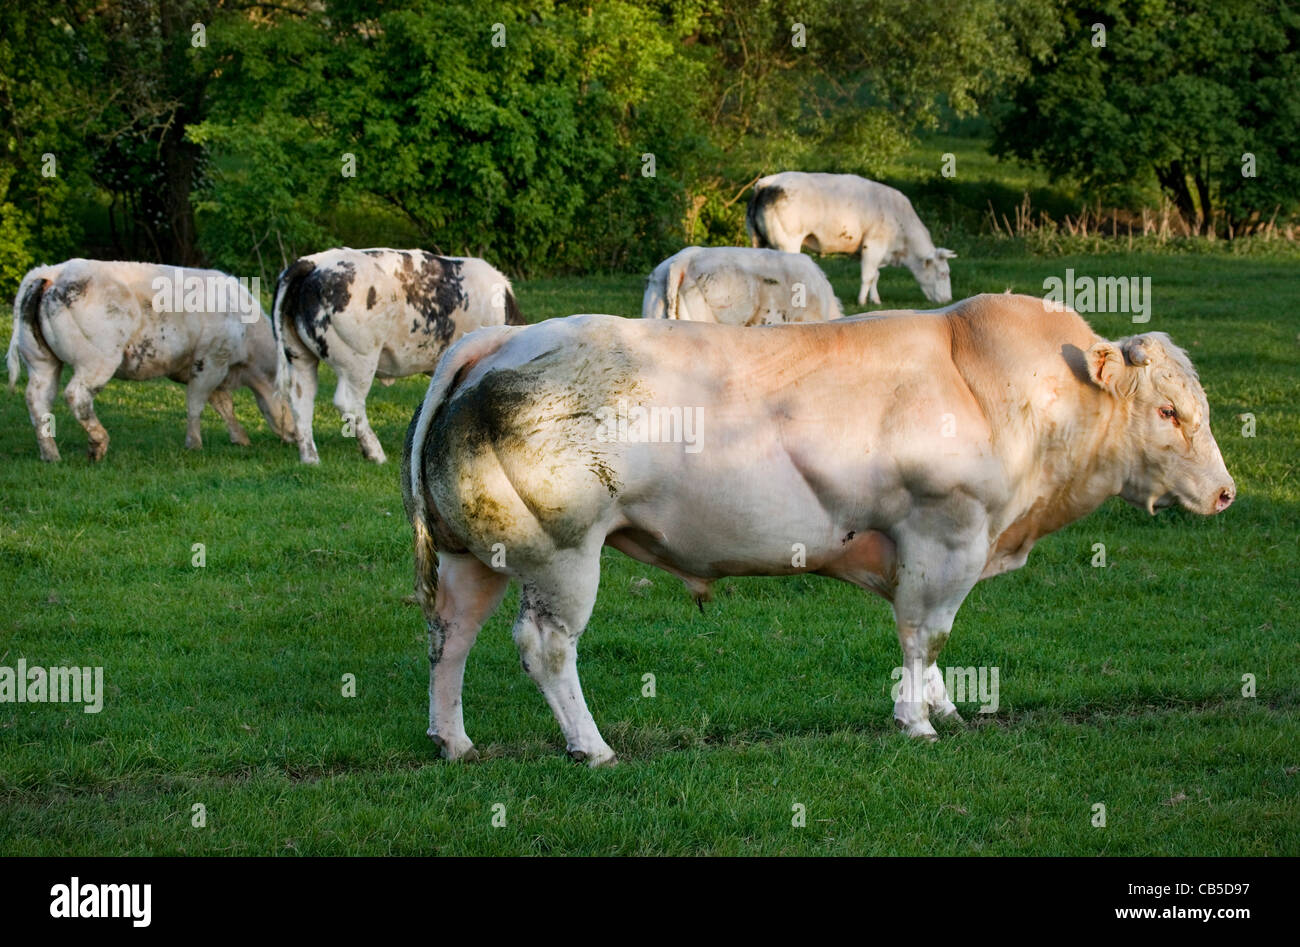 Beefymusclemuscle Com: Muscular Beefy White Bull (Bos Taurus) In Herd In Field